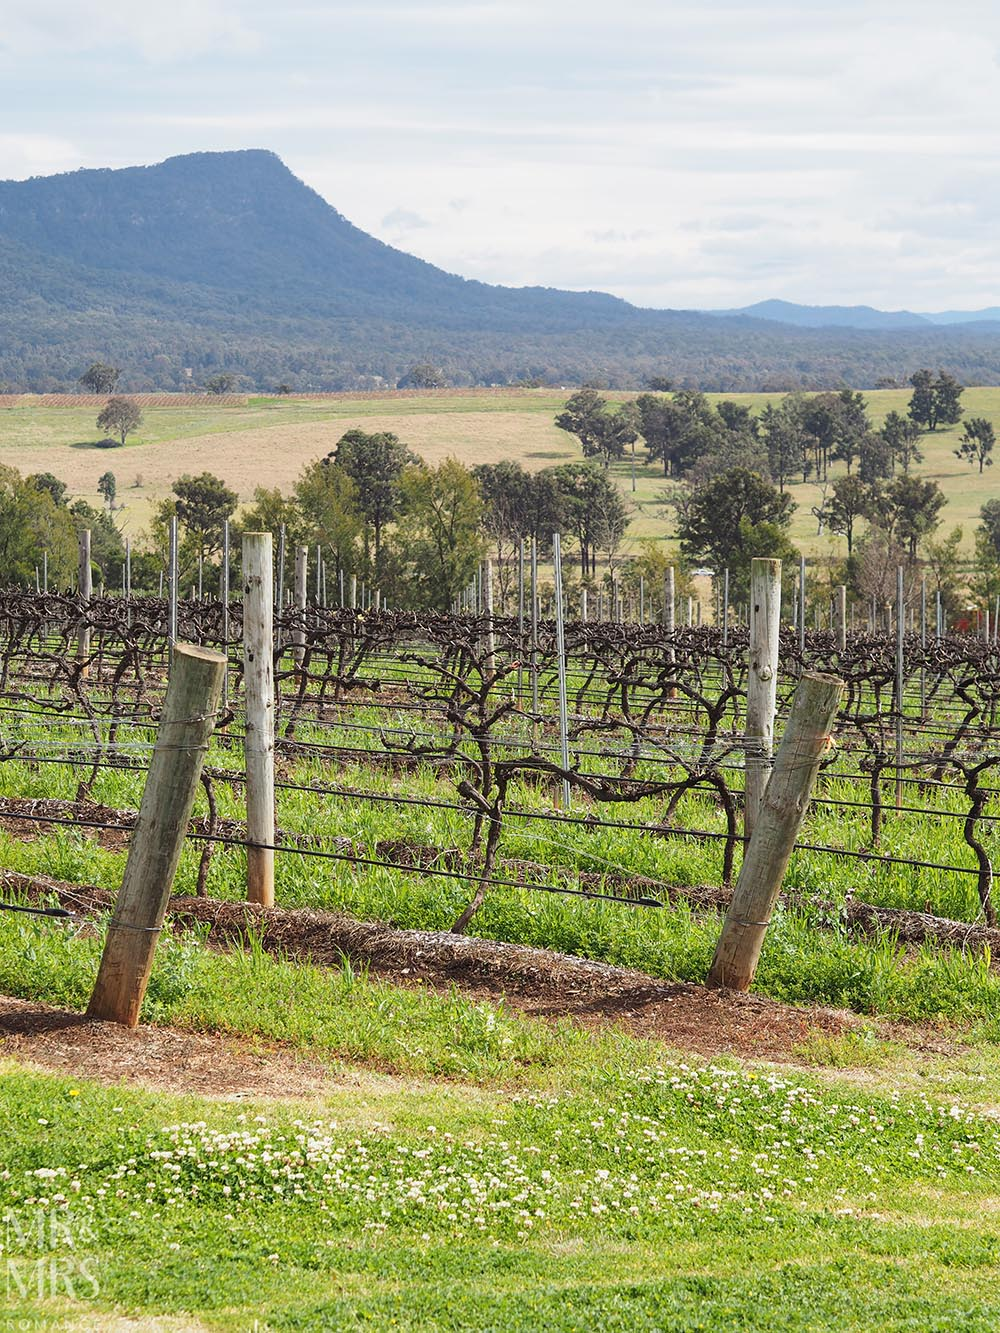 NSW country towns to visit - Orange